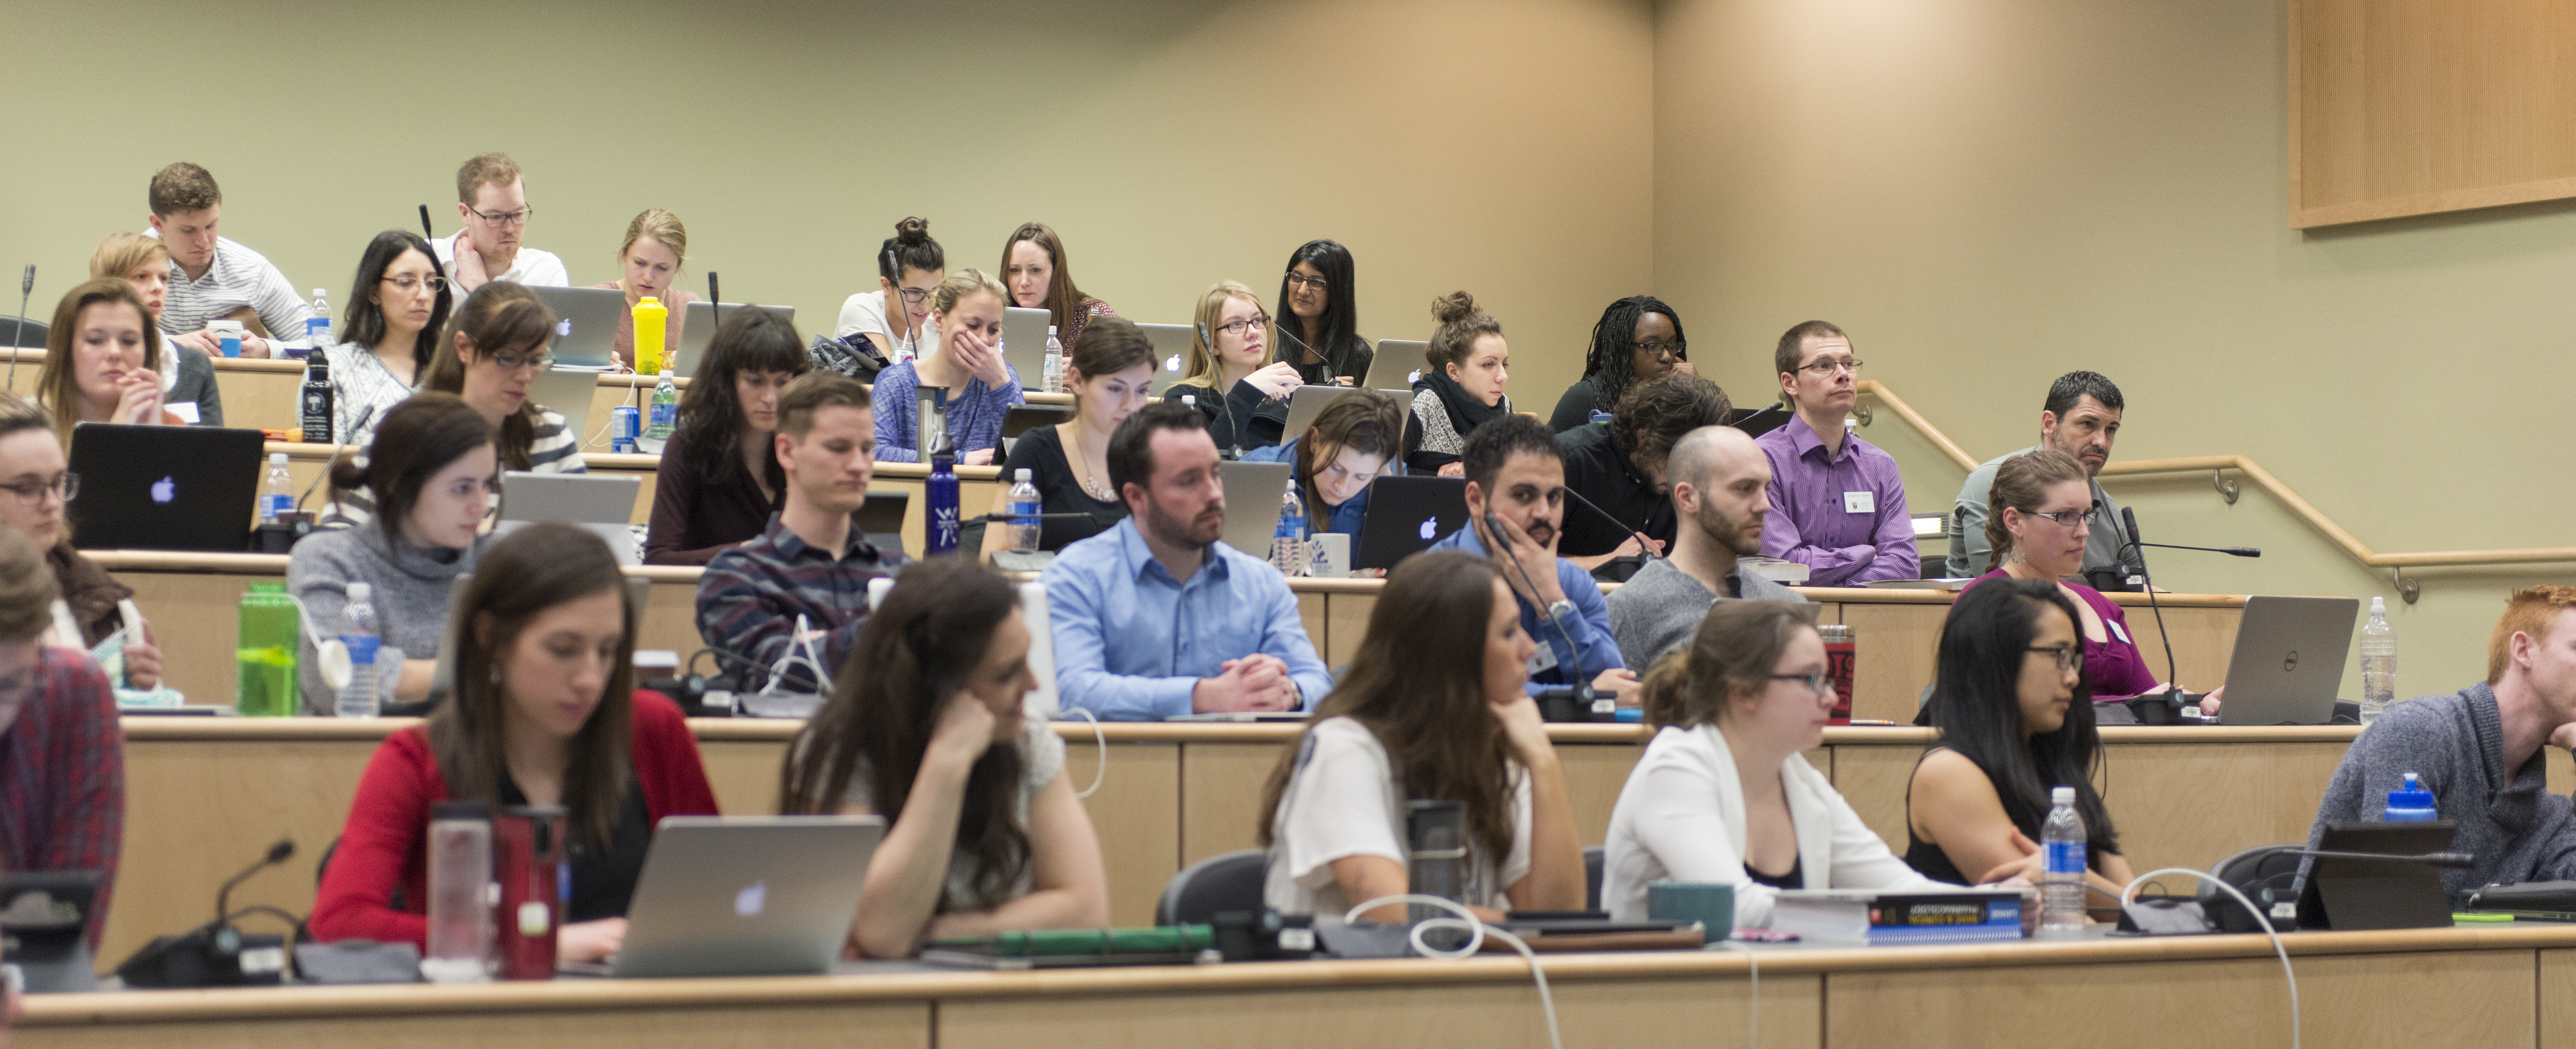 Photo of medical students sitting in lecture style classroom